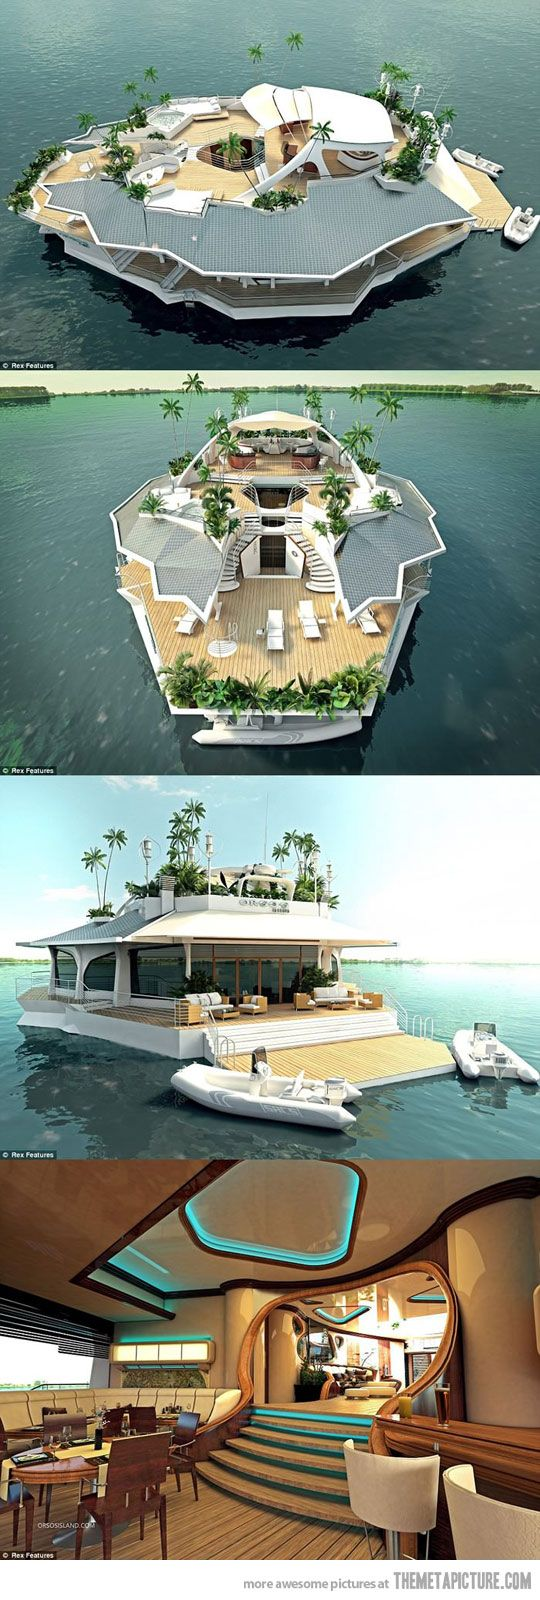 Floating Island Boat - AMAZING!!!